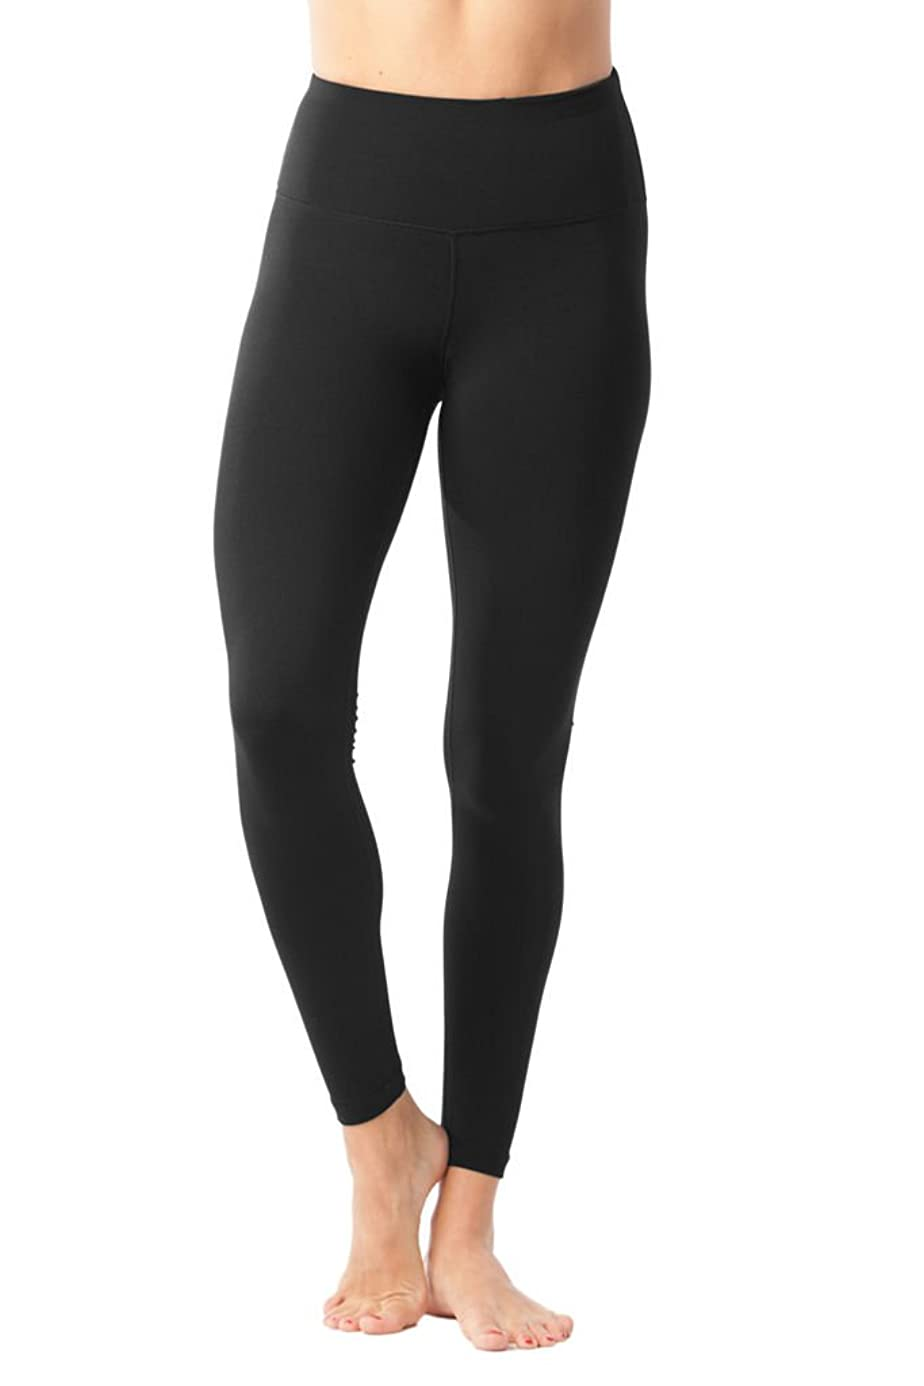 90 Degree By Reflex High Waist Power Flex Tummy Control Leggings